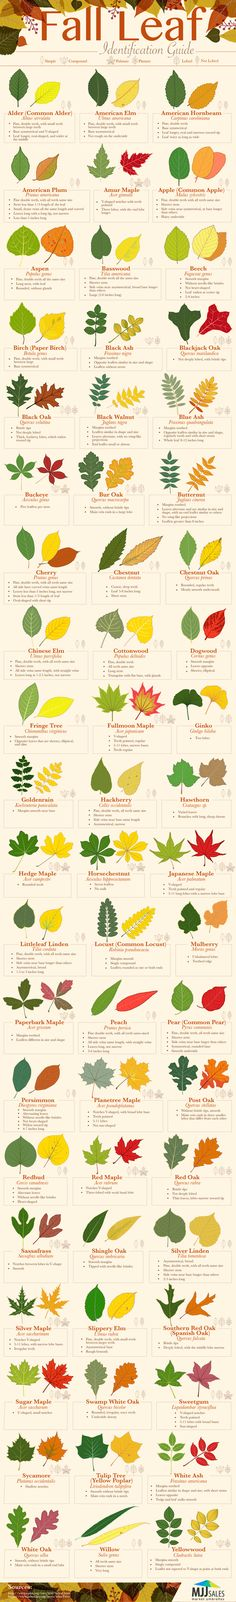 Know the Leaves that